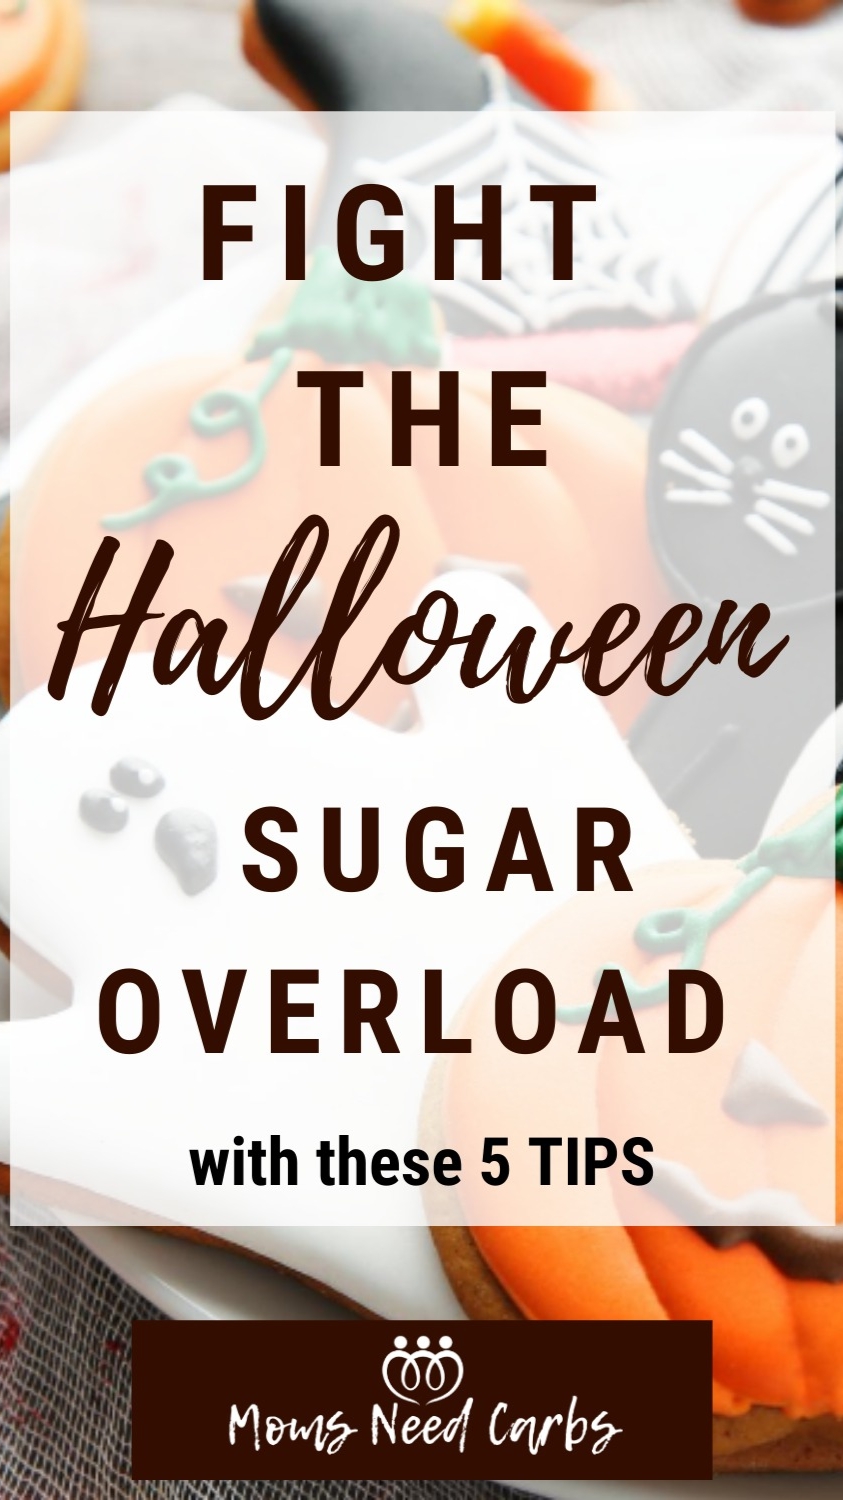 How to Enjoy Halloween Treats and Stick to Your He